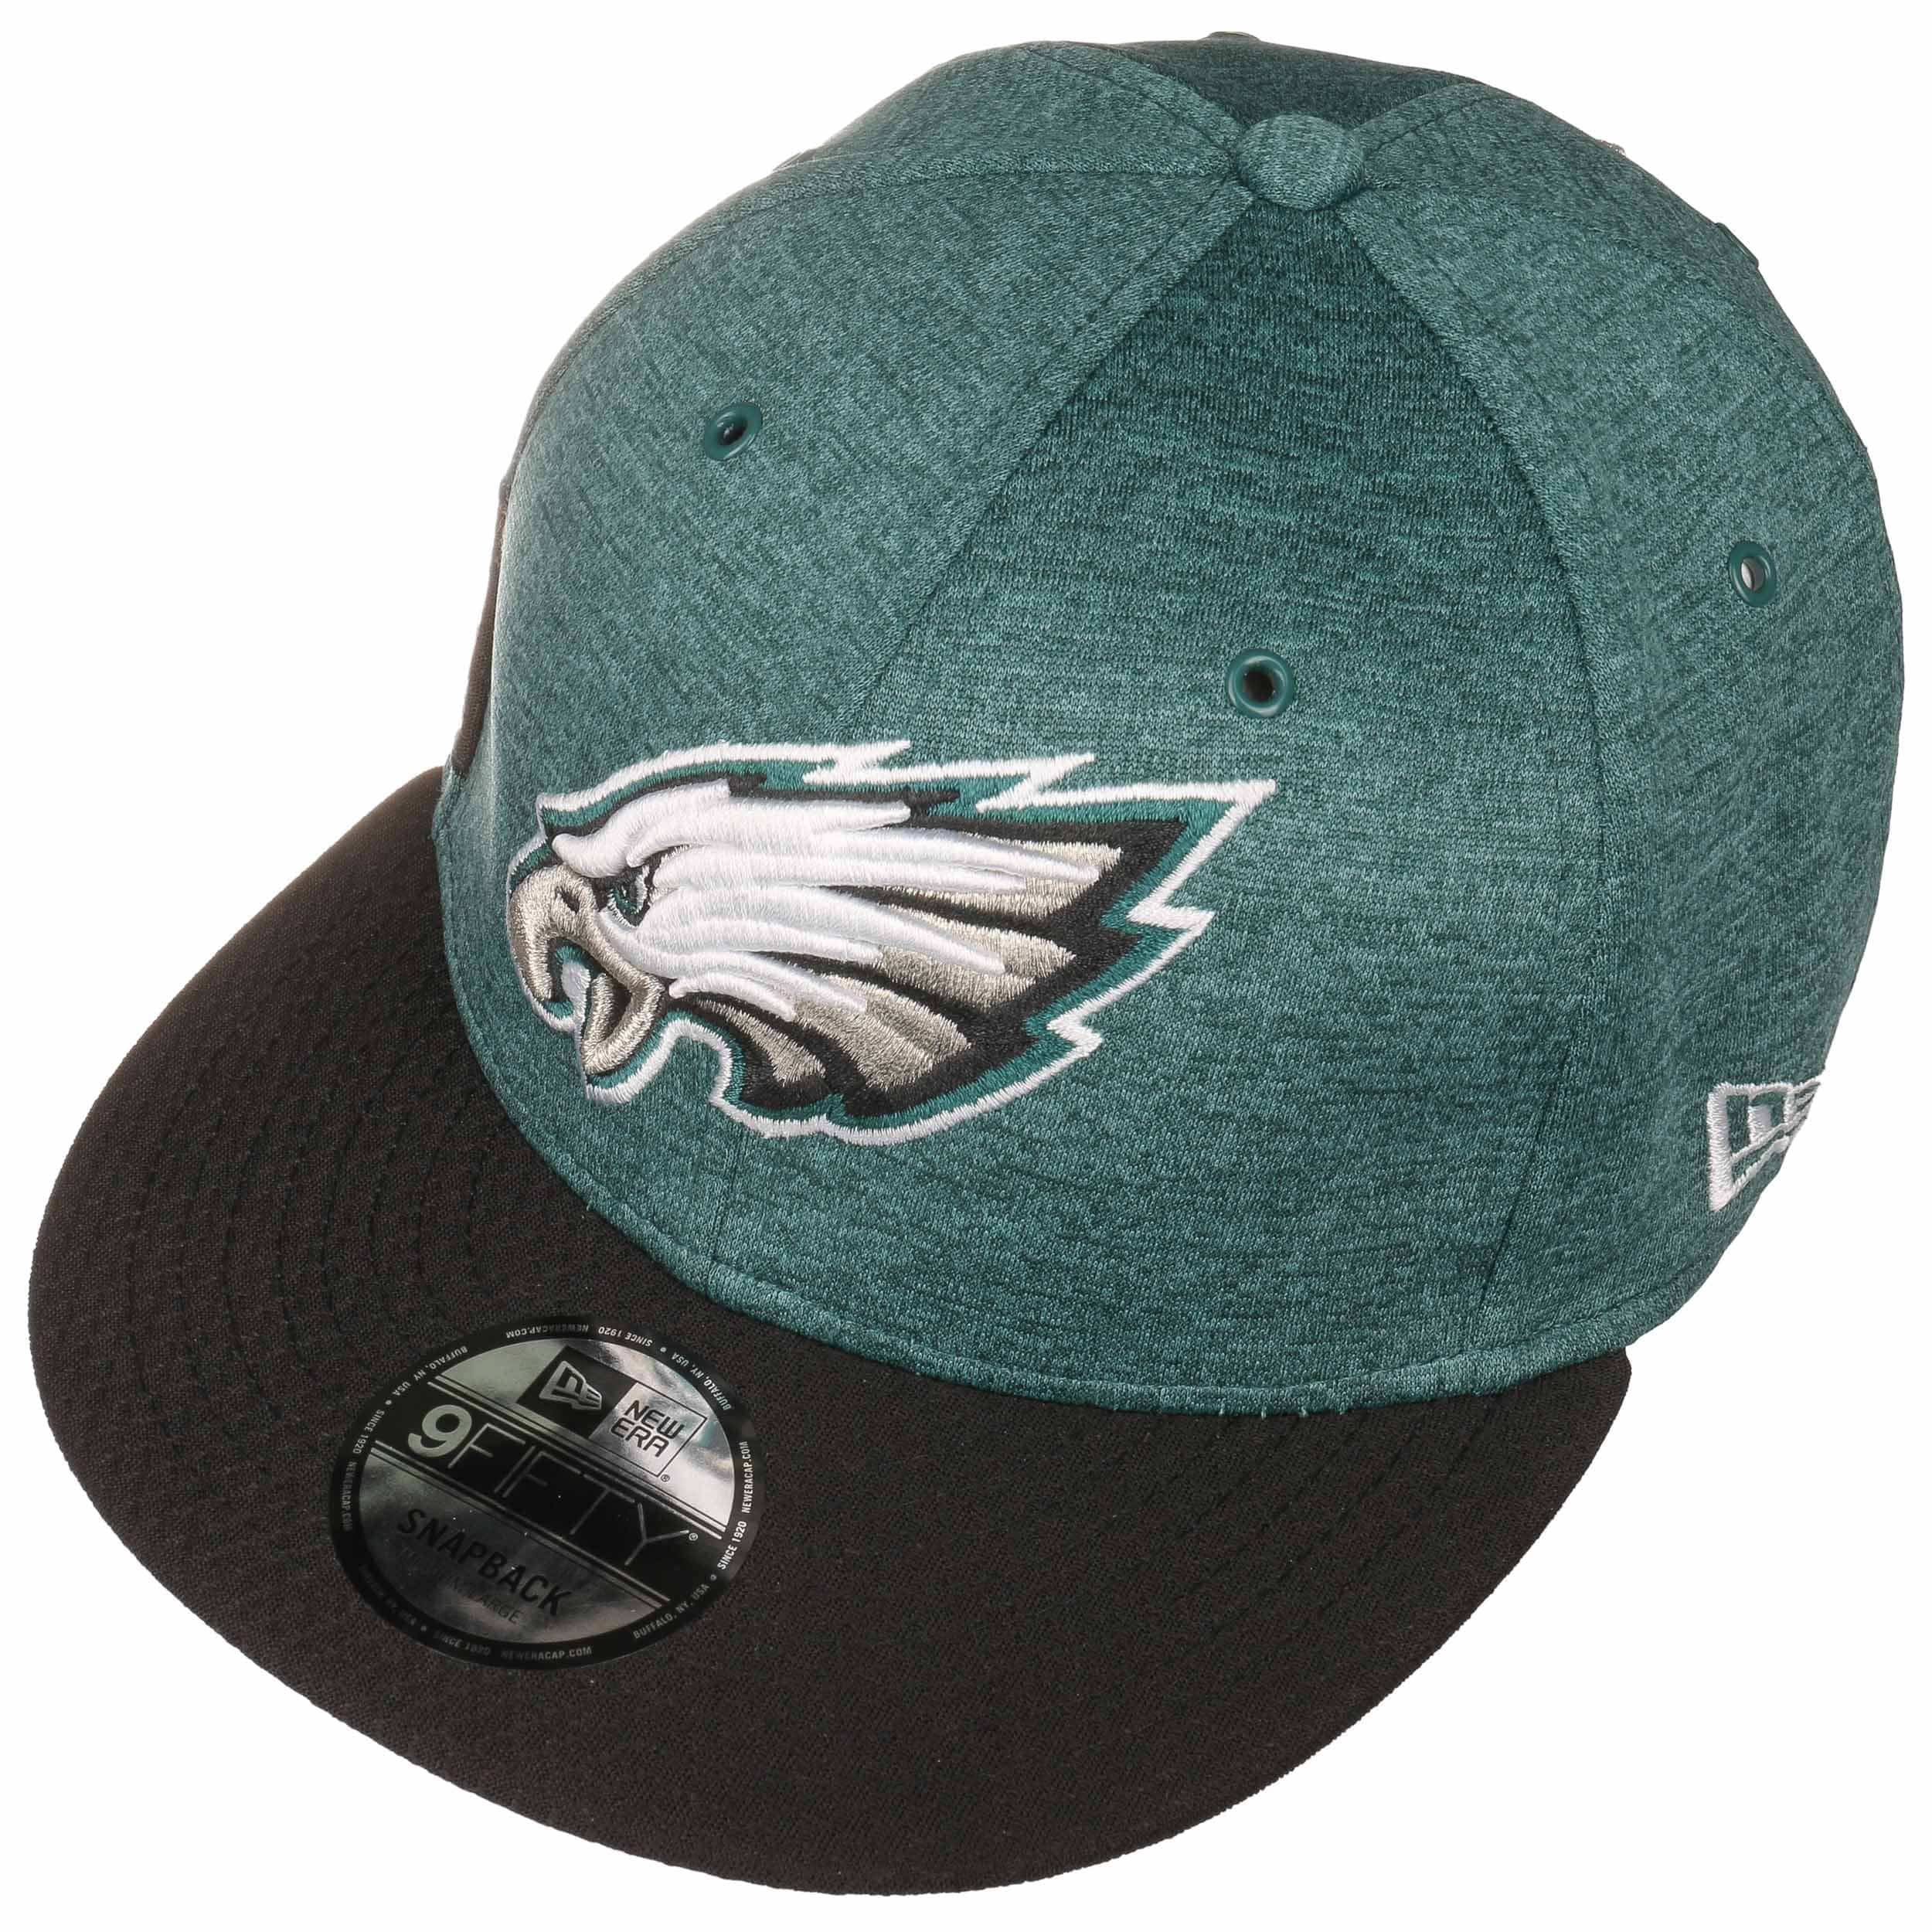 9c350c2af1a 59Fifty On-Field 18 Eagles Cap by New Era - dark green 1 ...